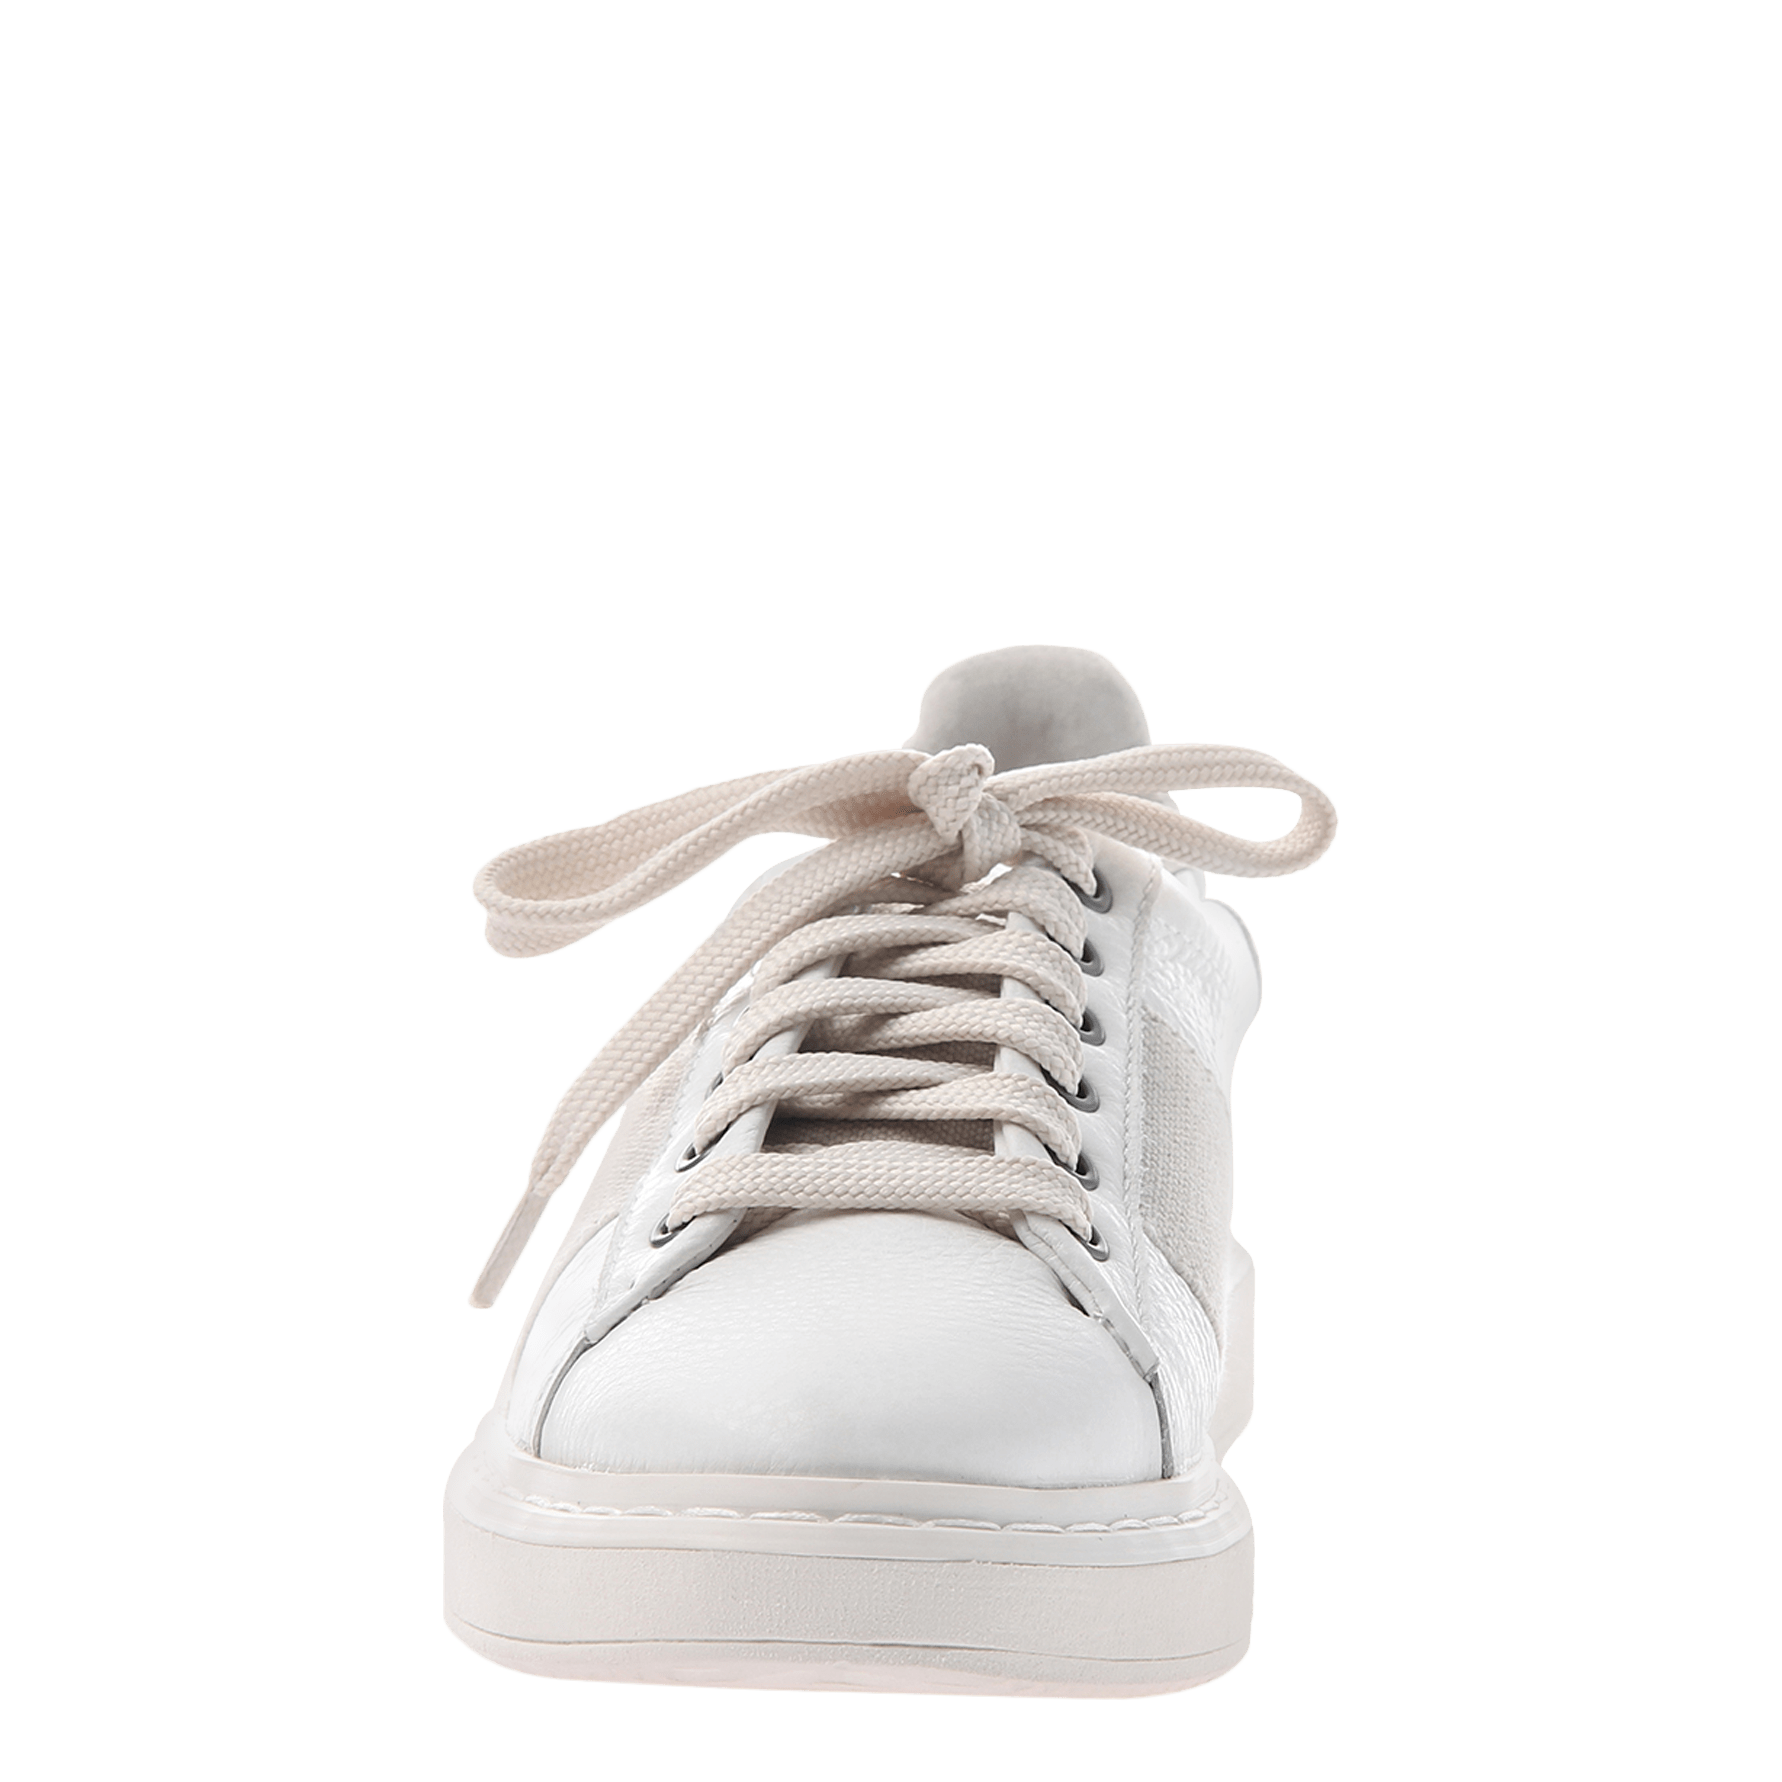 Normcore In White Sneakers Women S Shoes By Otbt